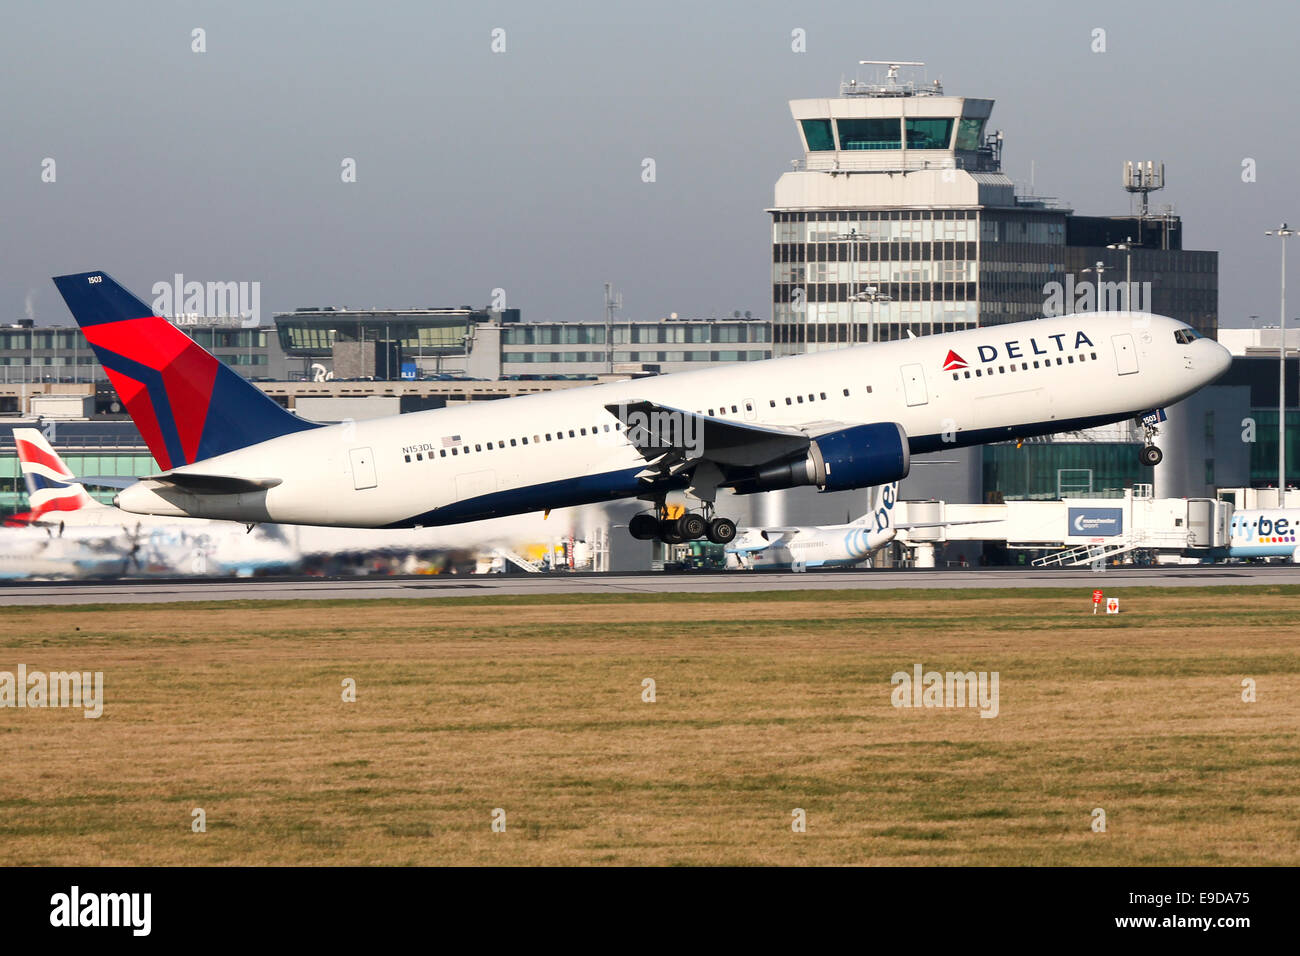 Delta Airlines Boeing 767-300 rotates from runway 05L at Manchester airport. - Stock Image